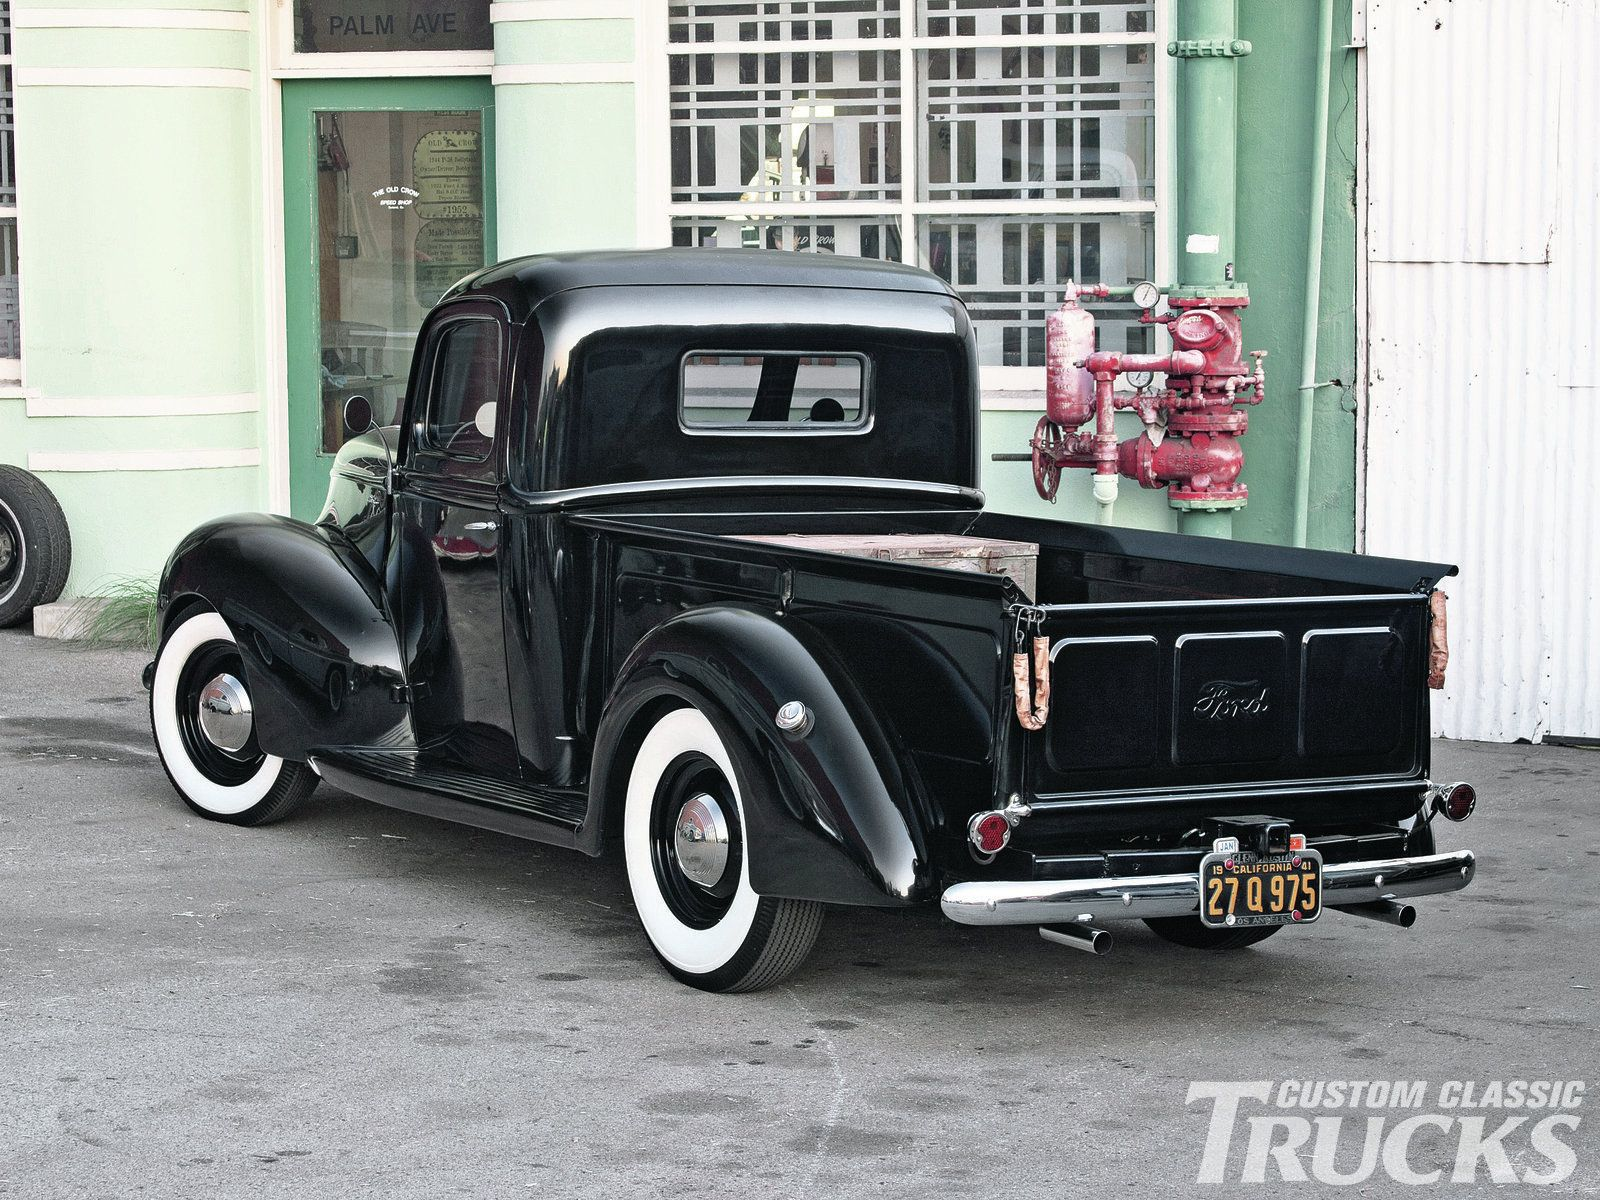 medium resolution of 1940 ford truck 1940 ford truck tail gate photo 7